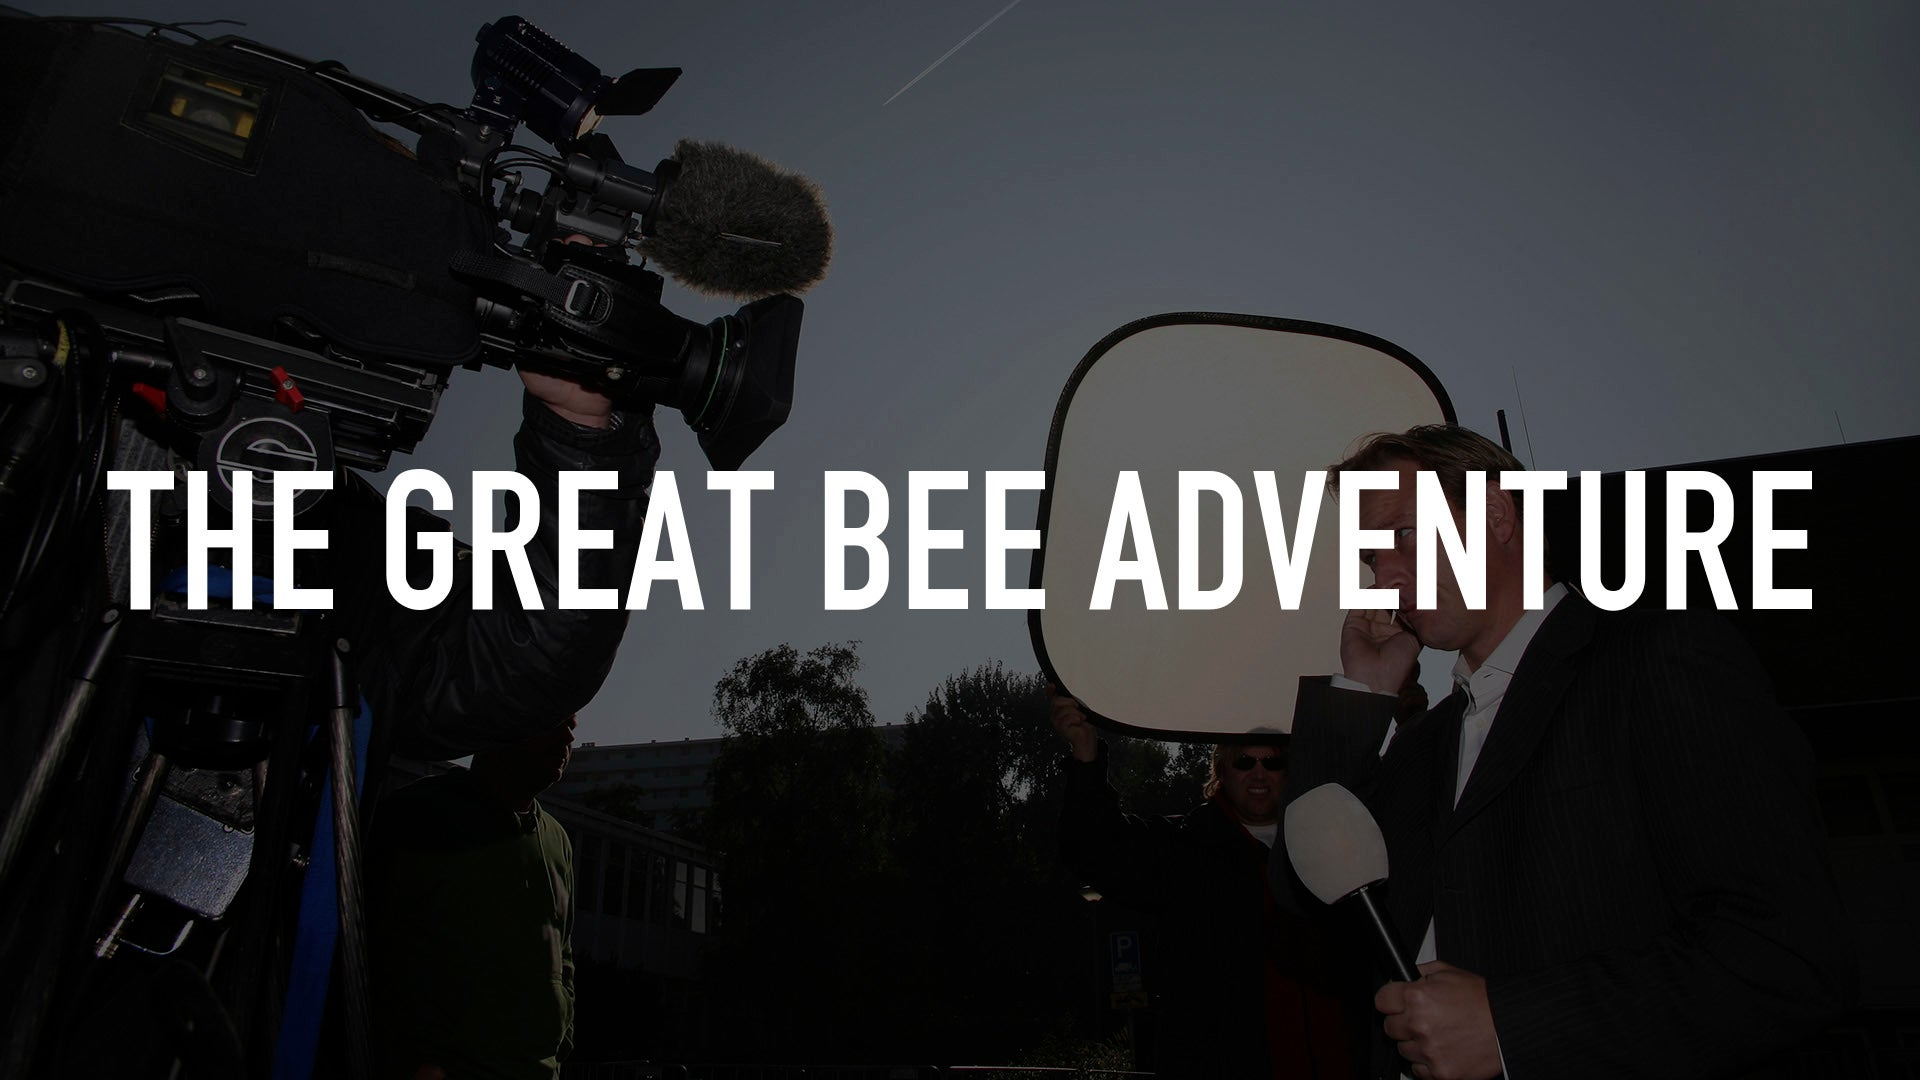 The Great Bee Adventure